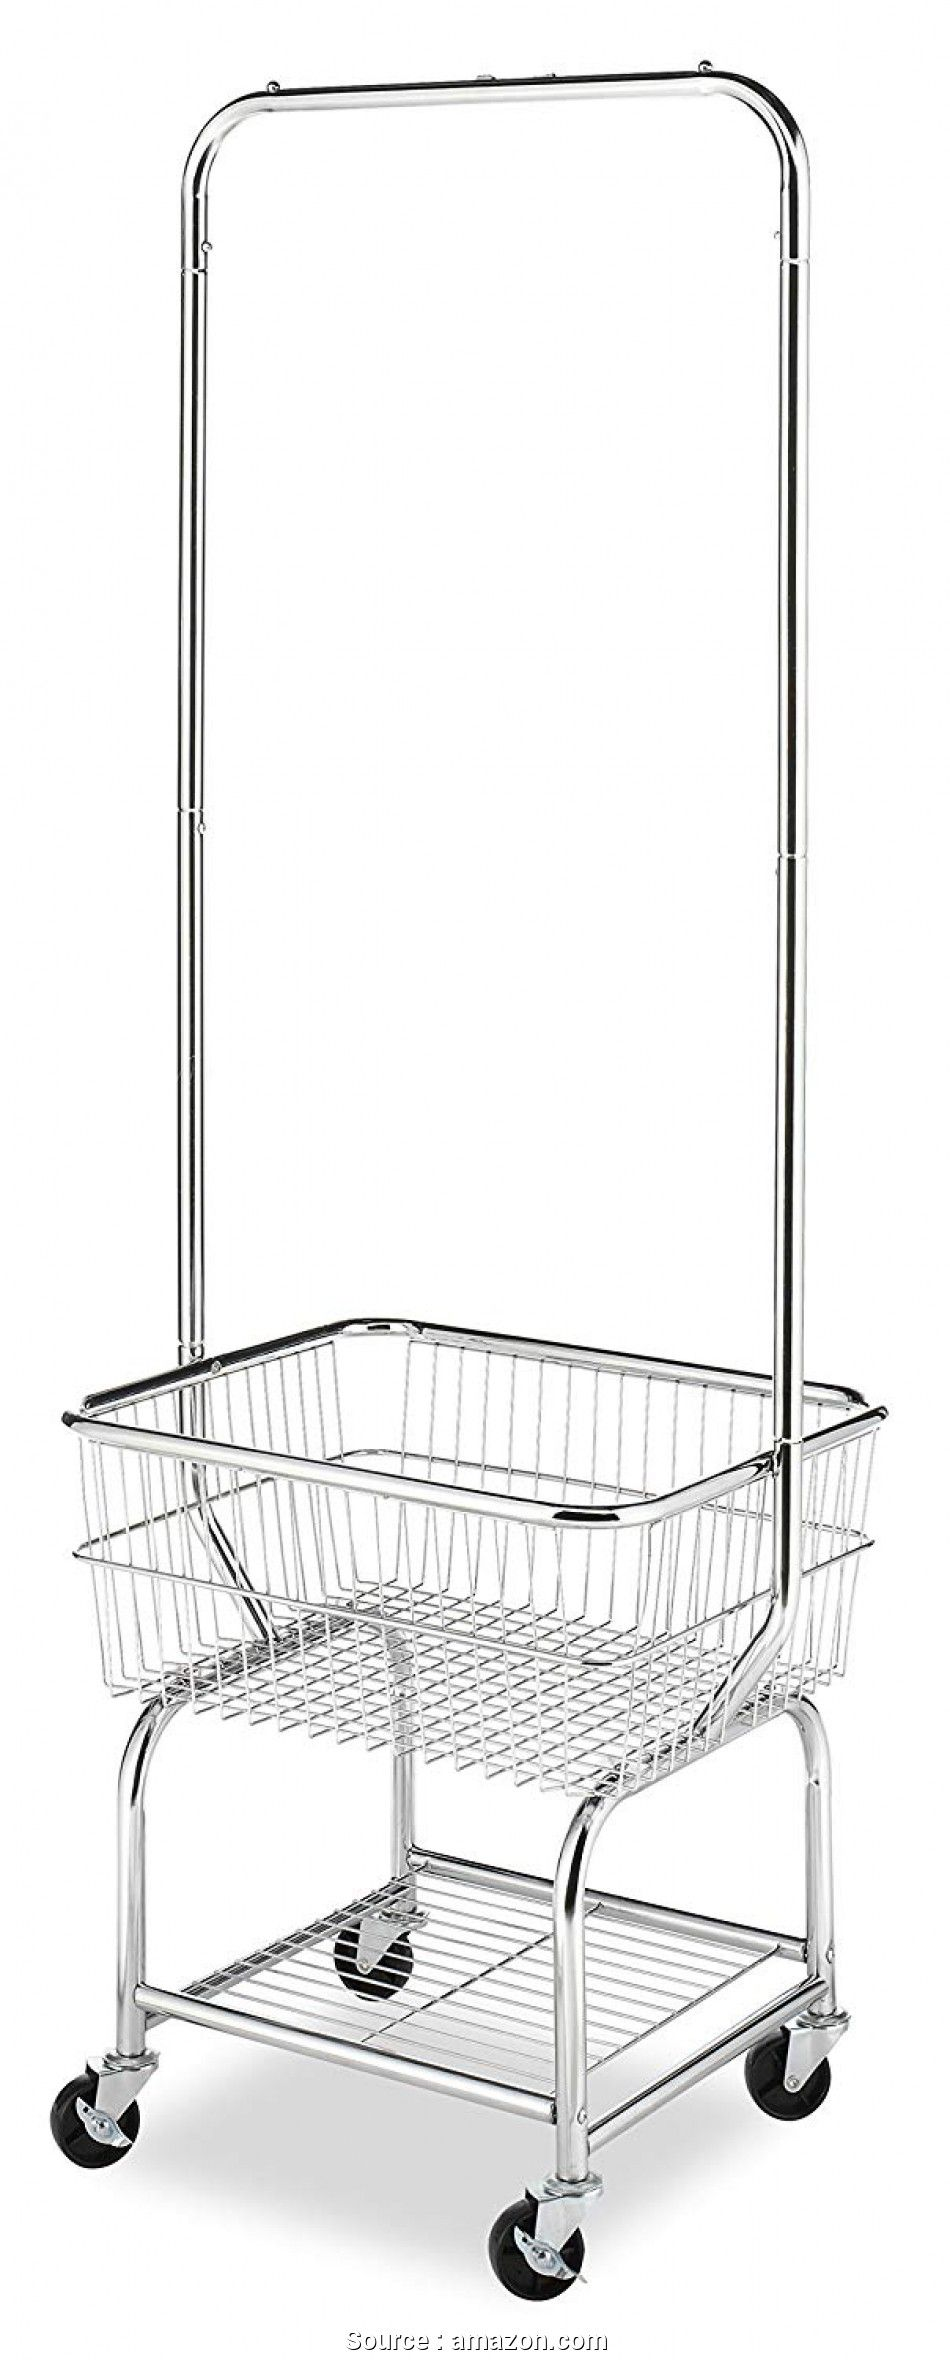 Wire Basket Laundry Storage Amazon Com Whitmor Commercial Rolling